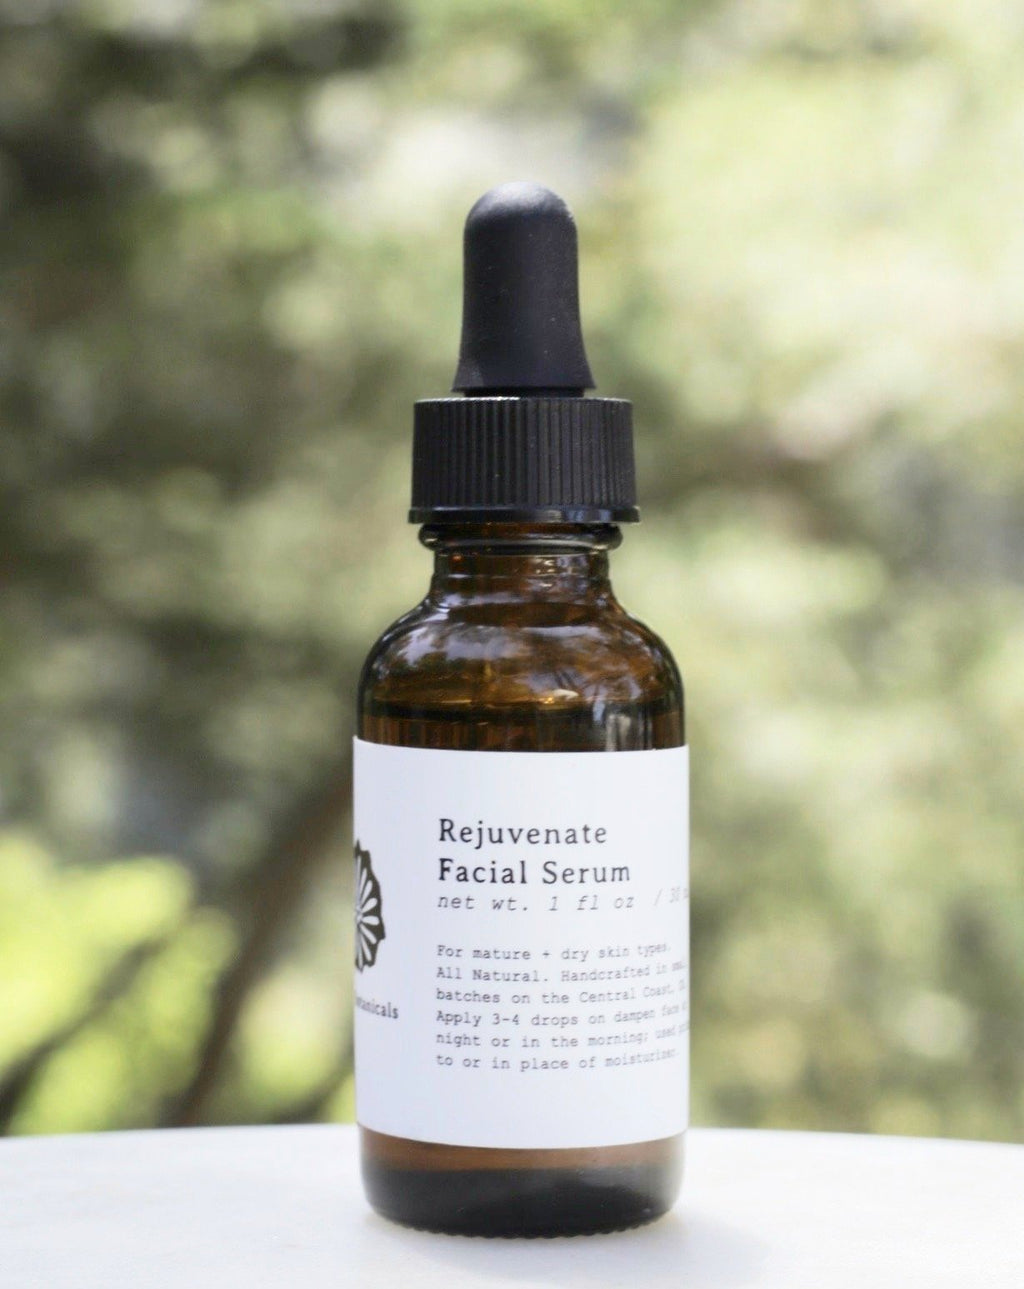 Rejuvenate Facial Serum